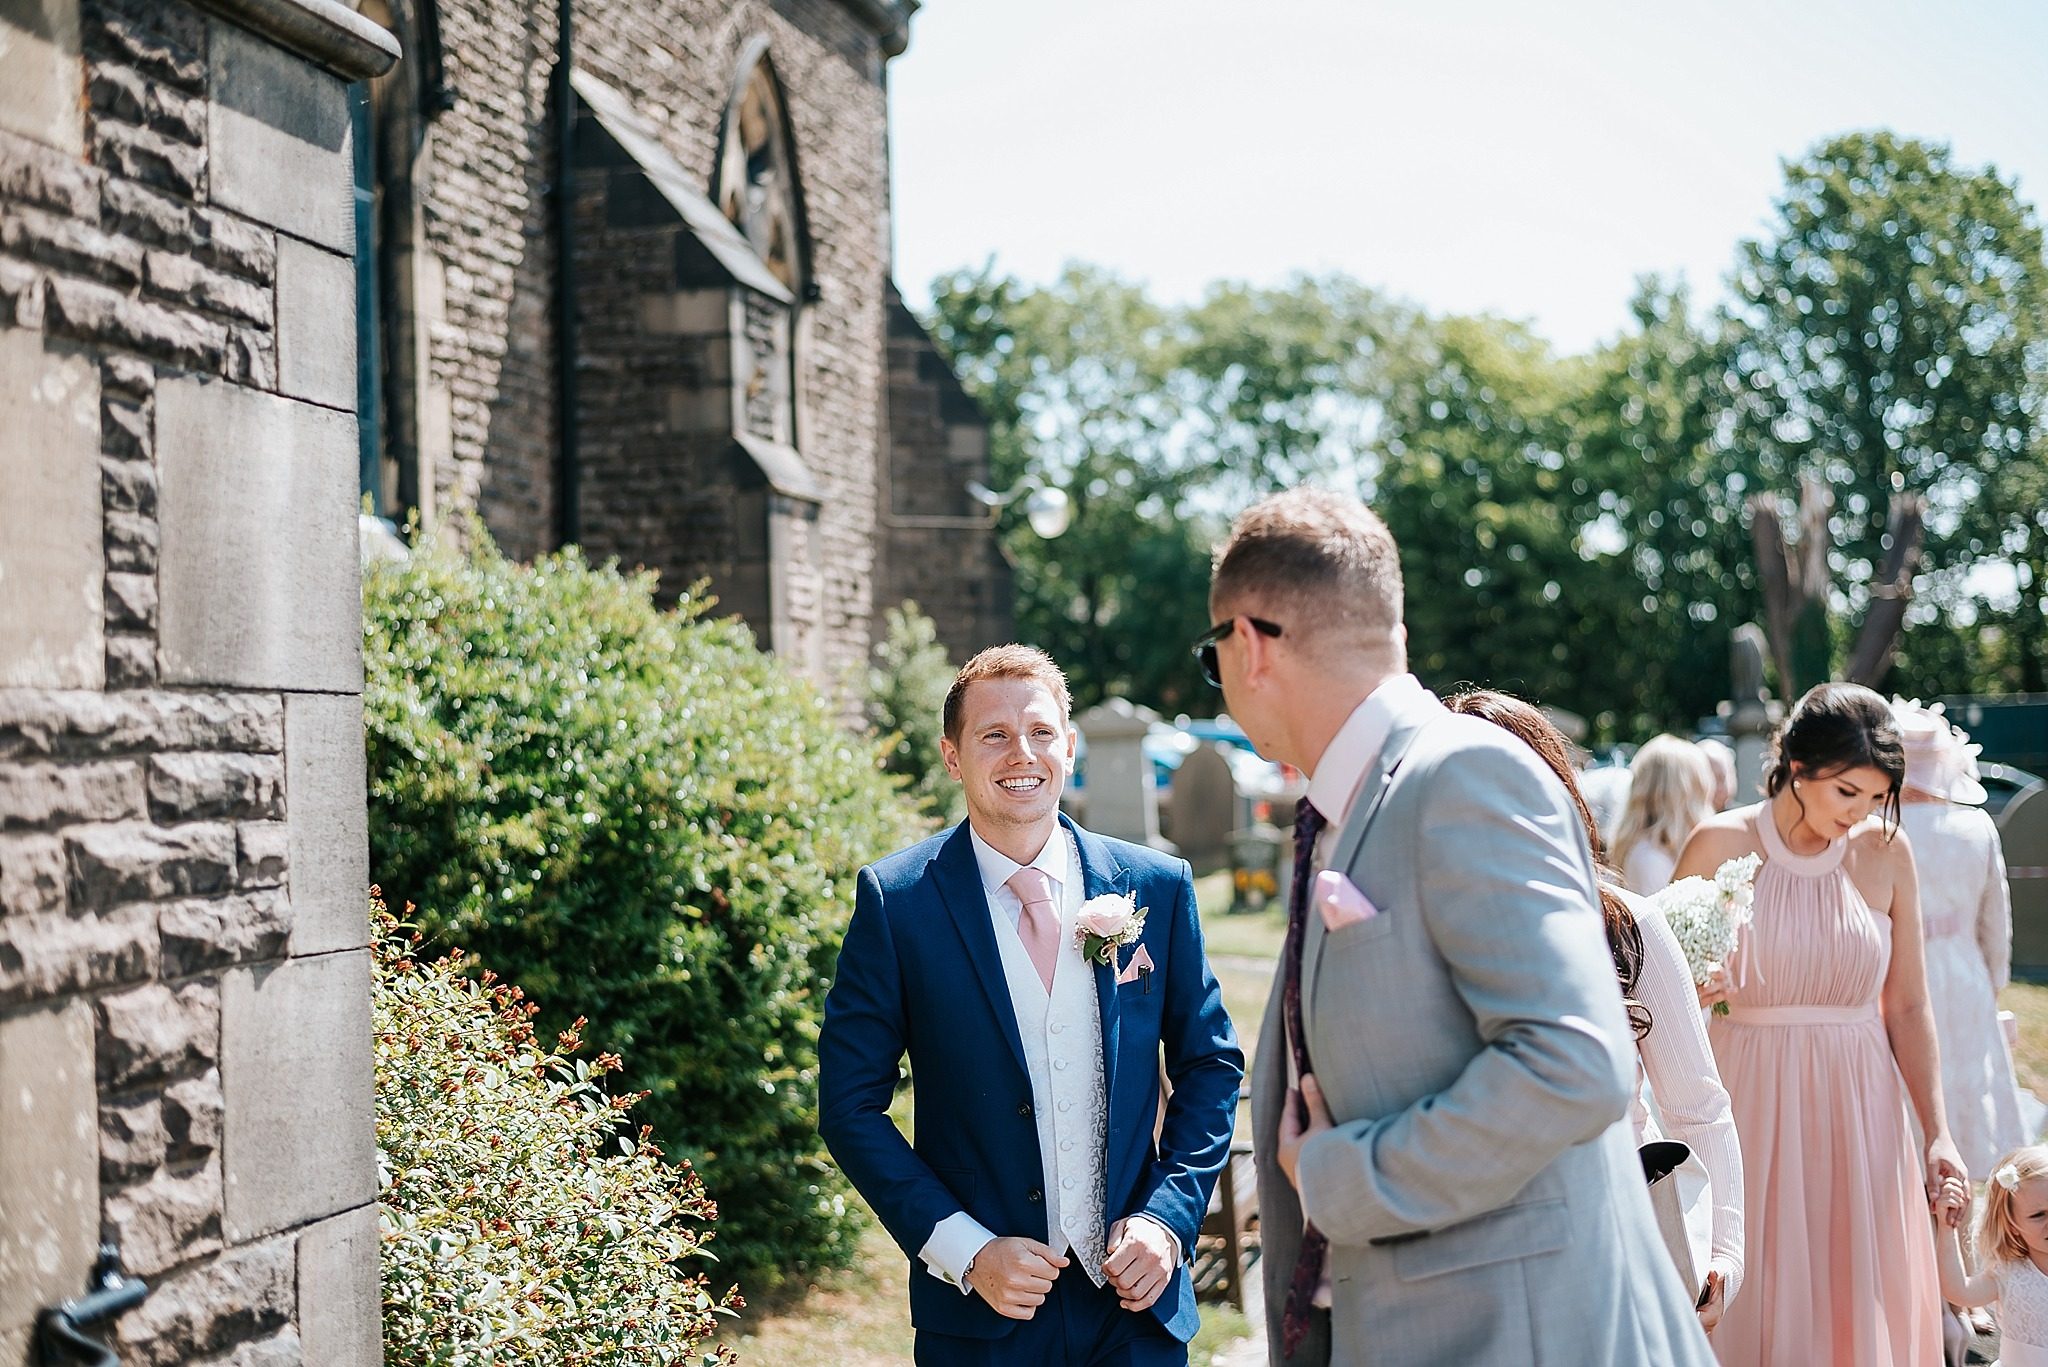 groom chatting to guests at wedding